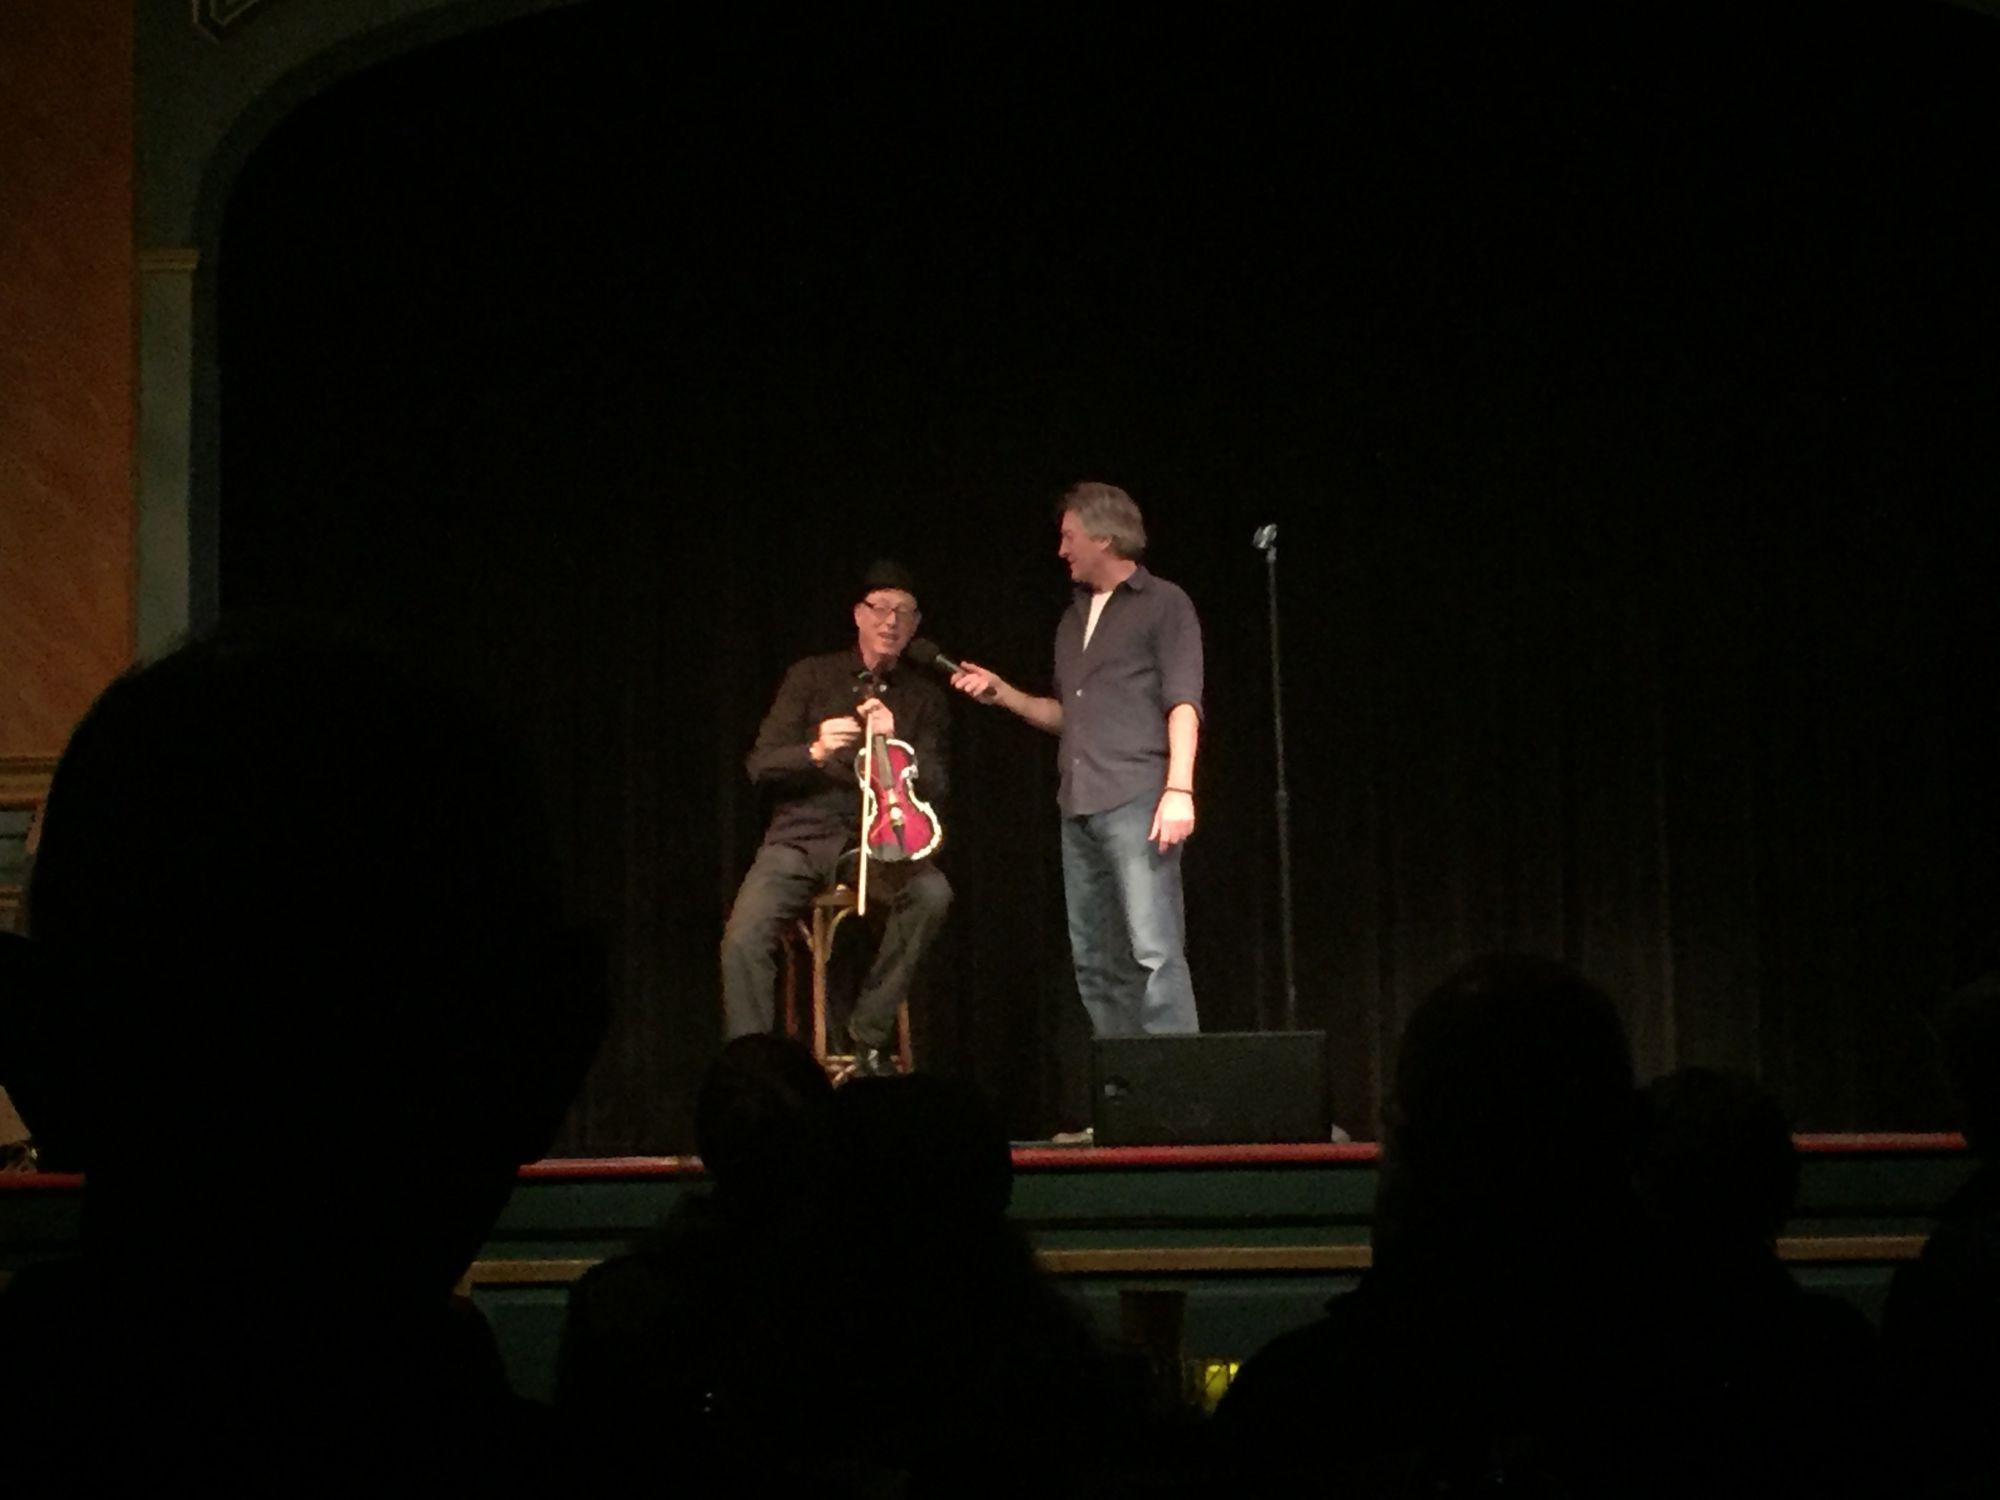 Taking the stage, host Mark Pitta adds humor between each act at Throckmorton Theatre's weekly